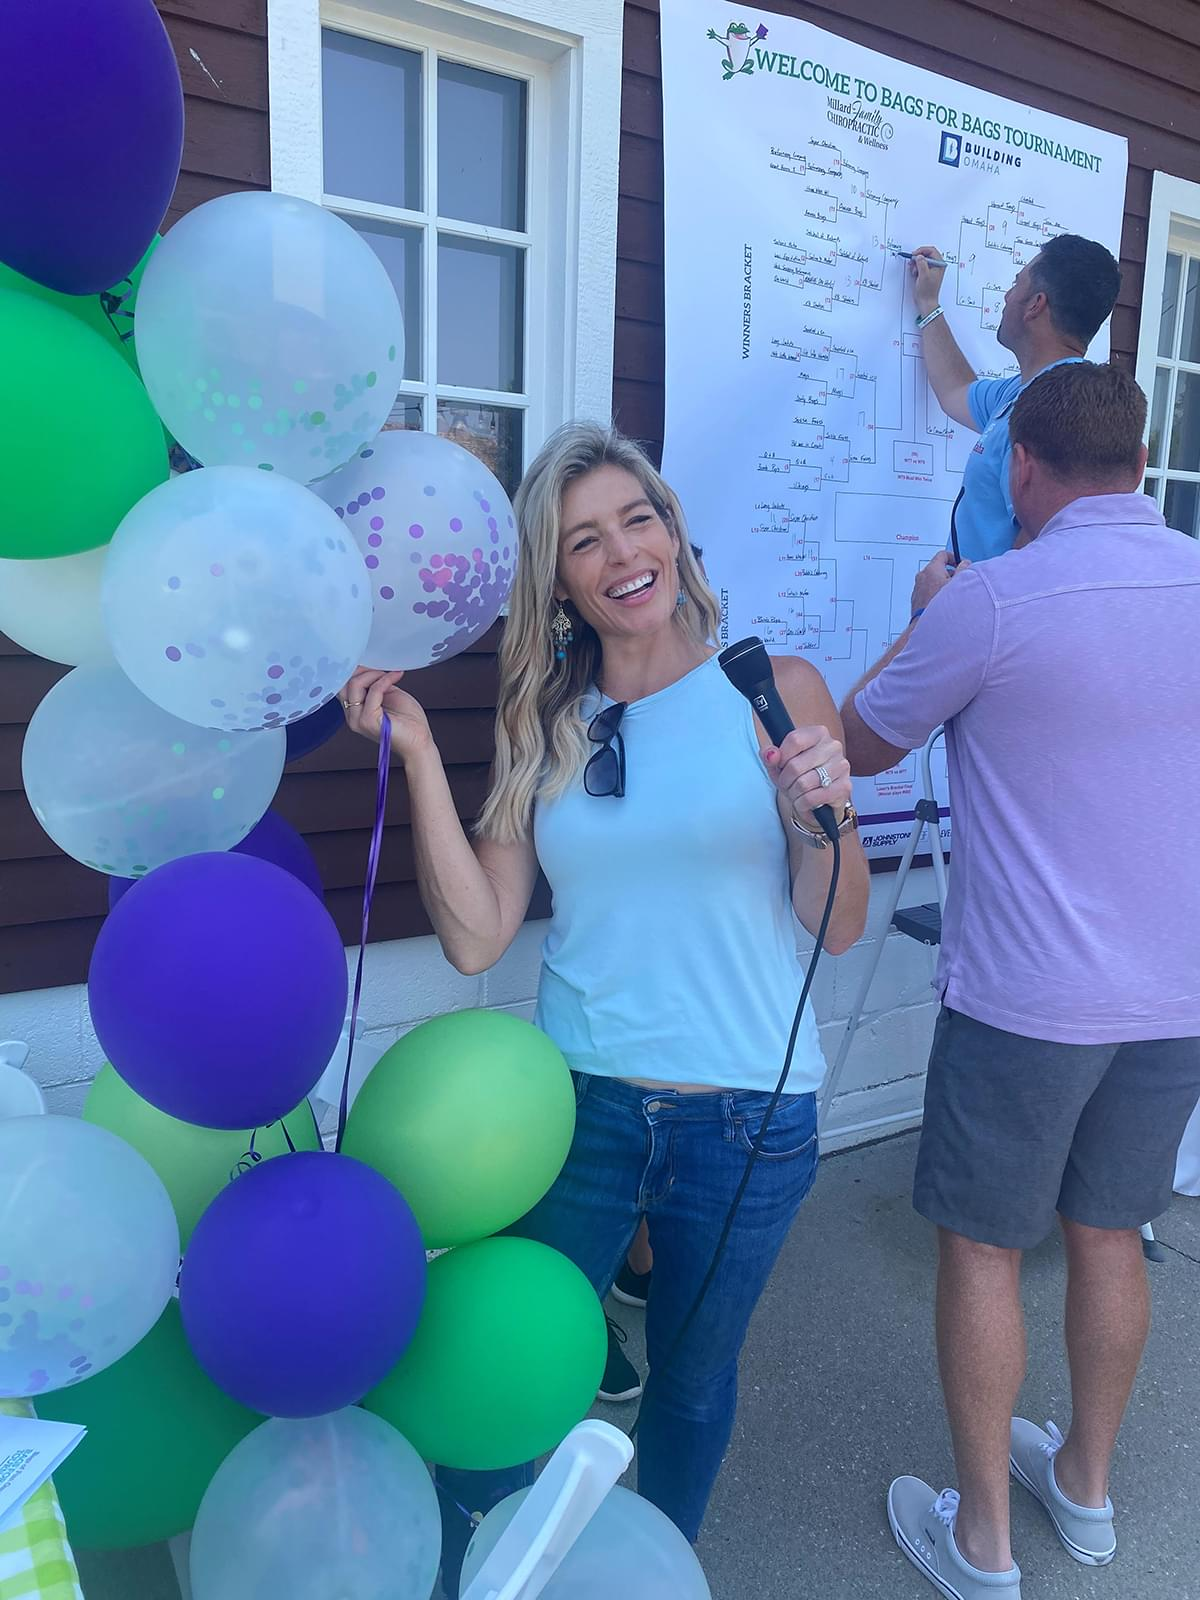 A woman taking a photo with balloons